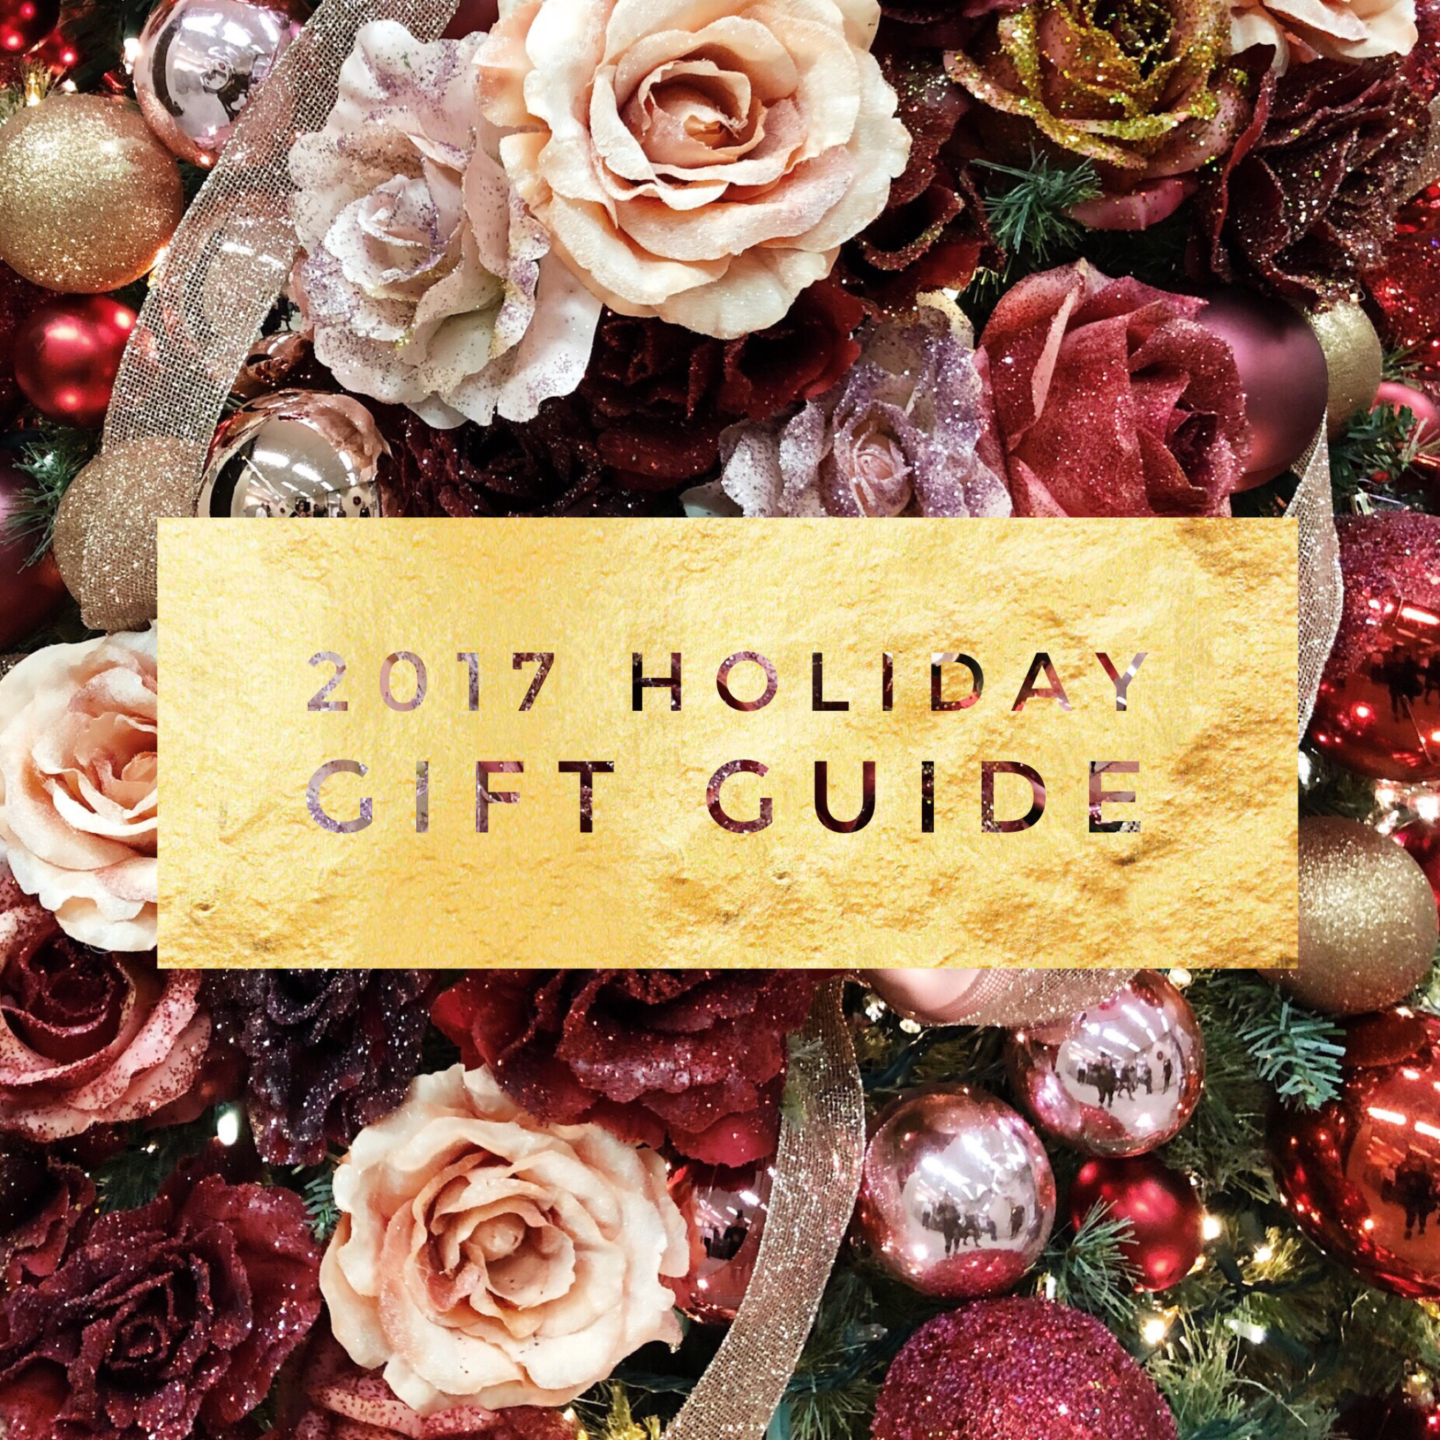 This Season's Gold // 2017 Holiday Gift Guide